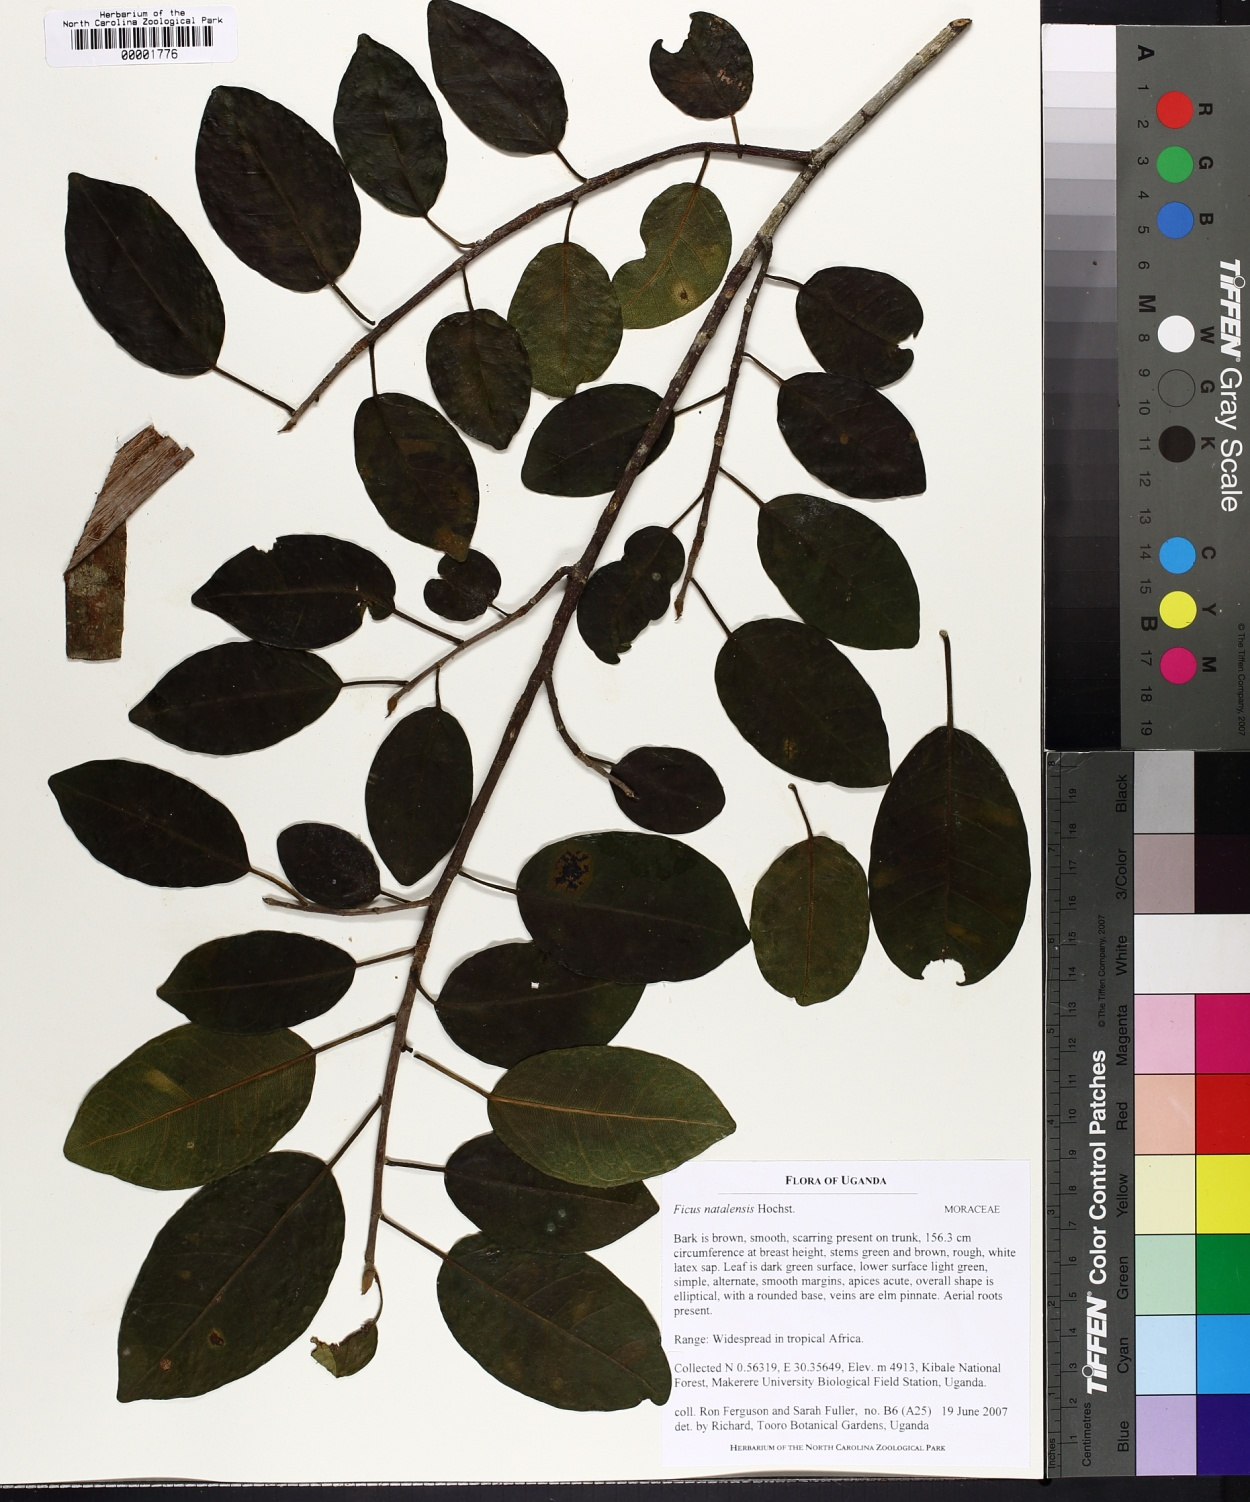 Ficus natalensis image